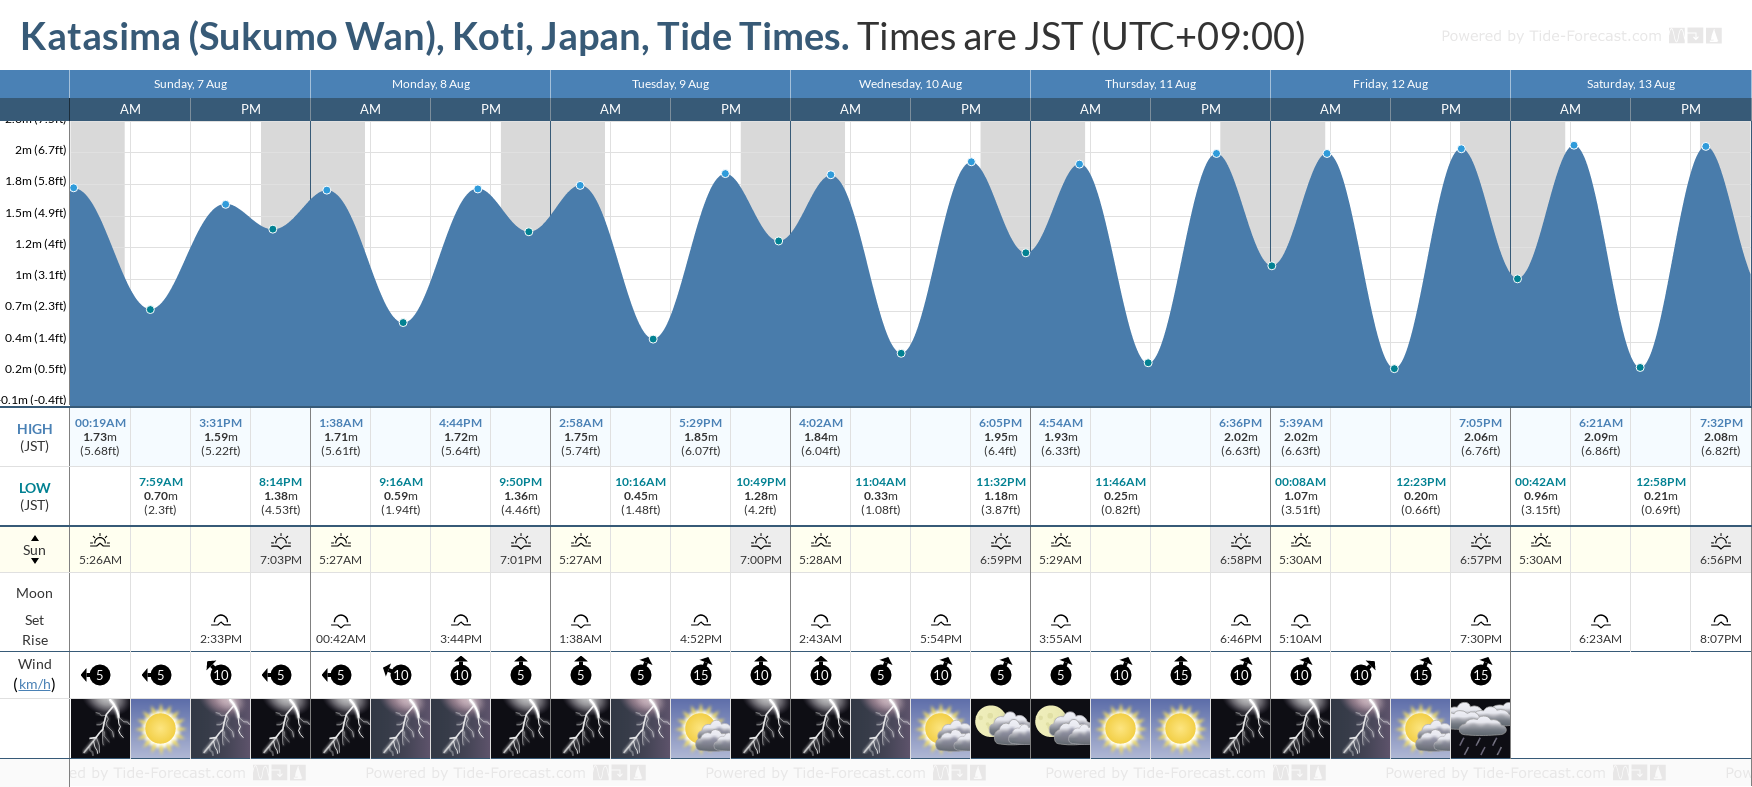 Katasima (Sukumo Wan), Koti, Japan Tide Chart including high and low tide tide times for the next 7 days